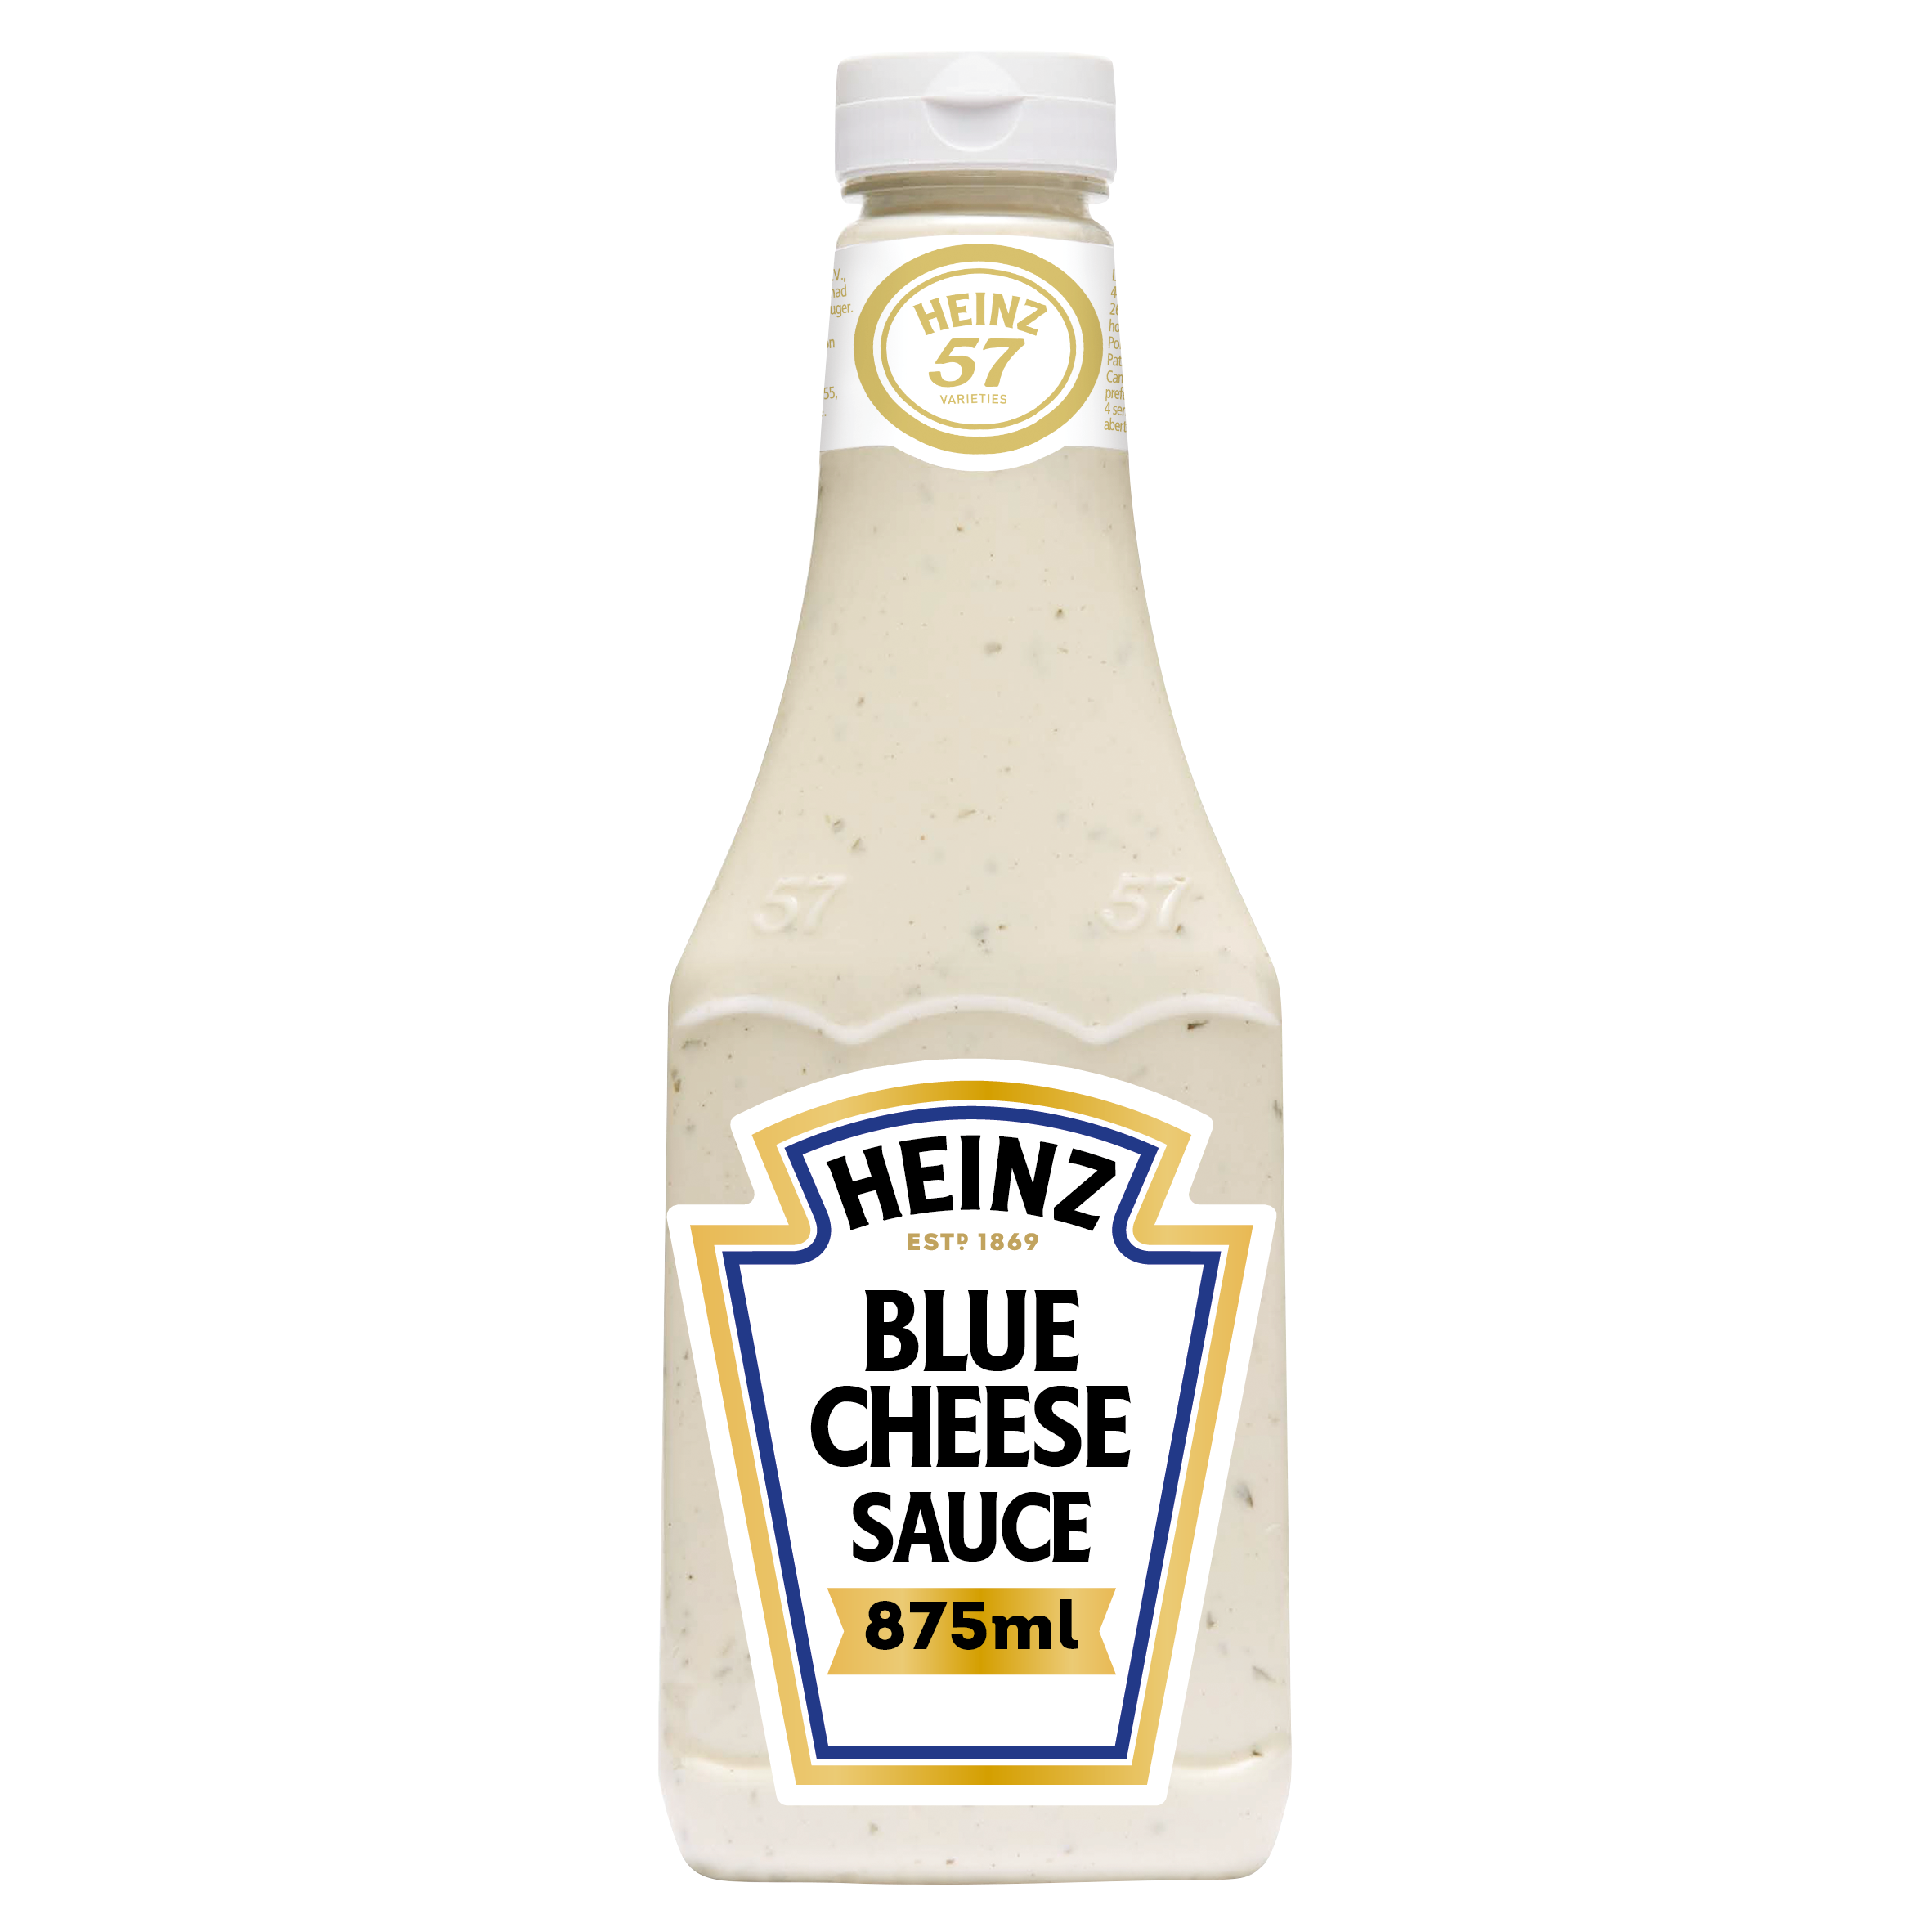 Heinz Blue Cheese 875ml image